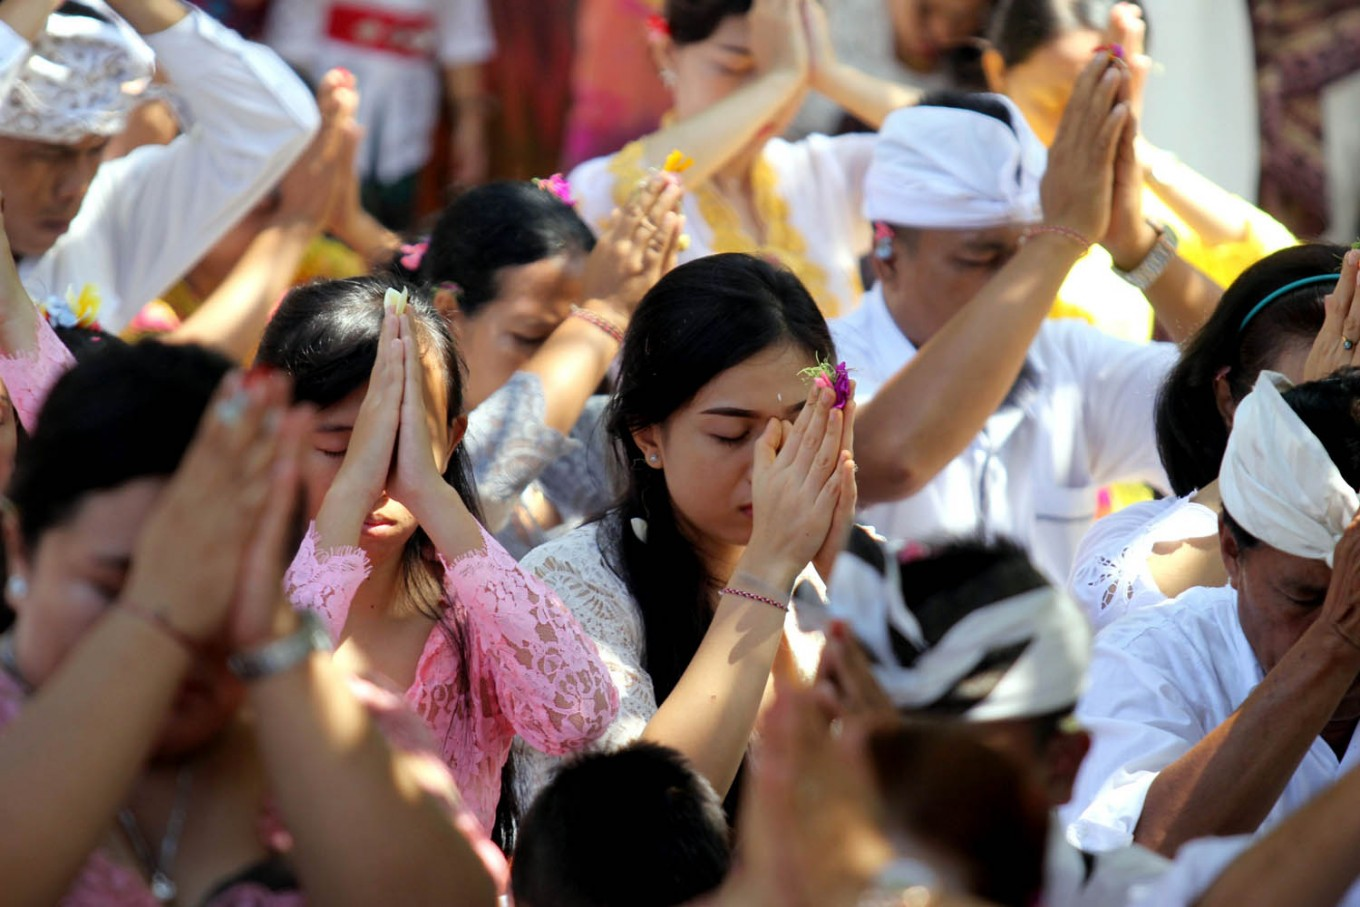 Hindus in Bali pray during the Galungan Festival at Pura Jagatnatha Temple, Denpasar, Bali, on Sept. 7. JP/Zul Trio Anggono